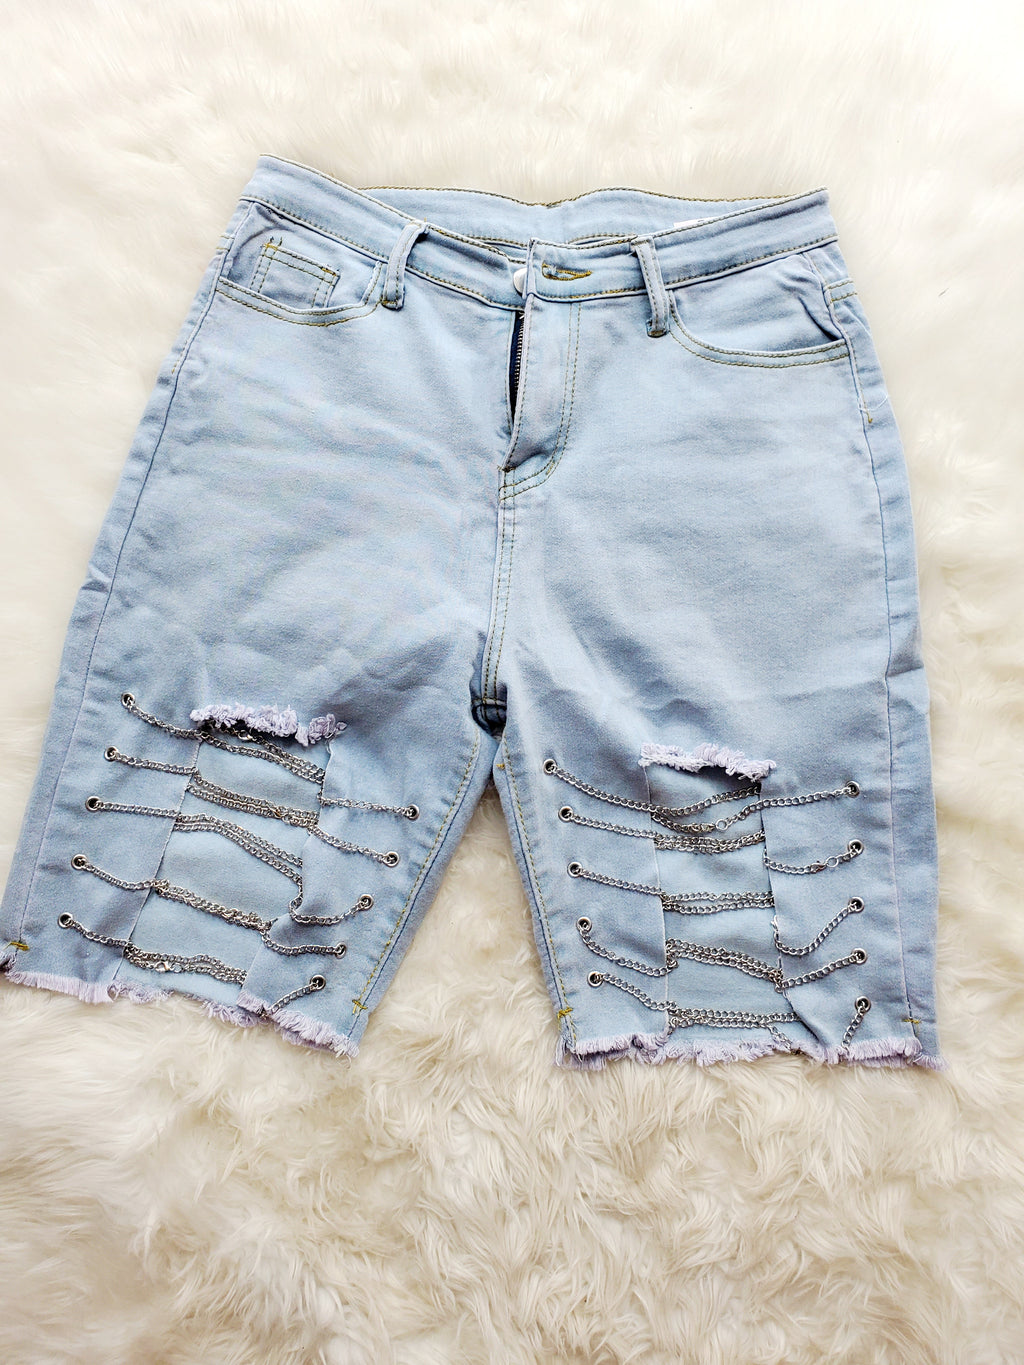 Chain Me Up Denim Shorts